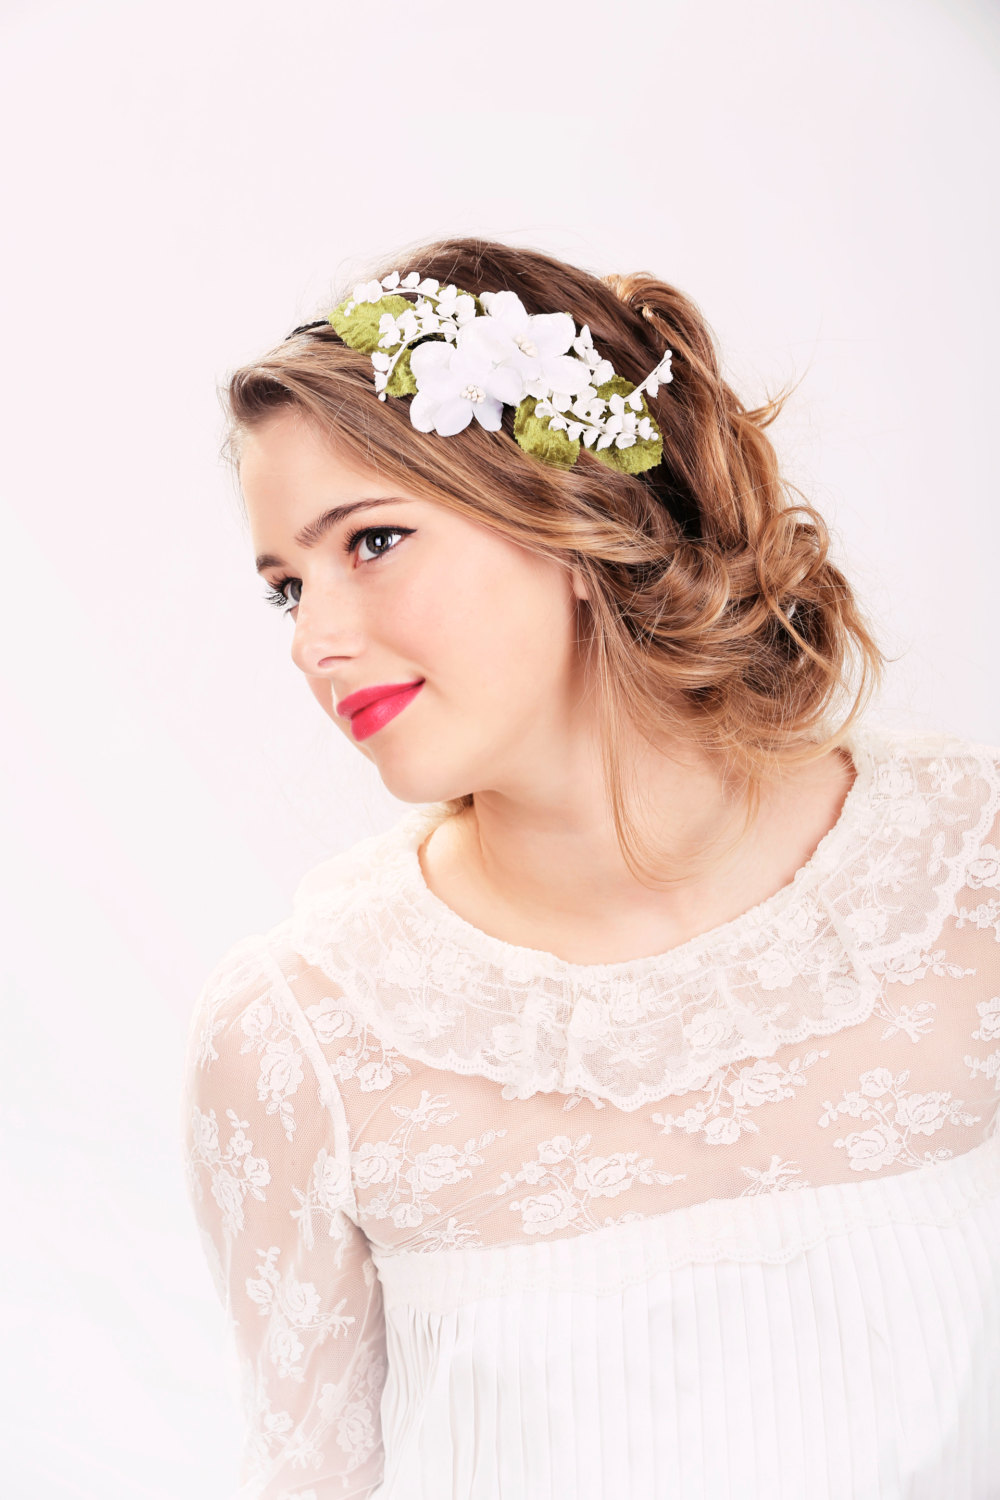 Wedding Headband Bridal Hair Wedding Hair Accessory White Flower